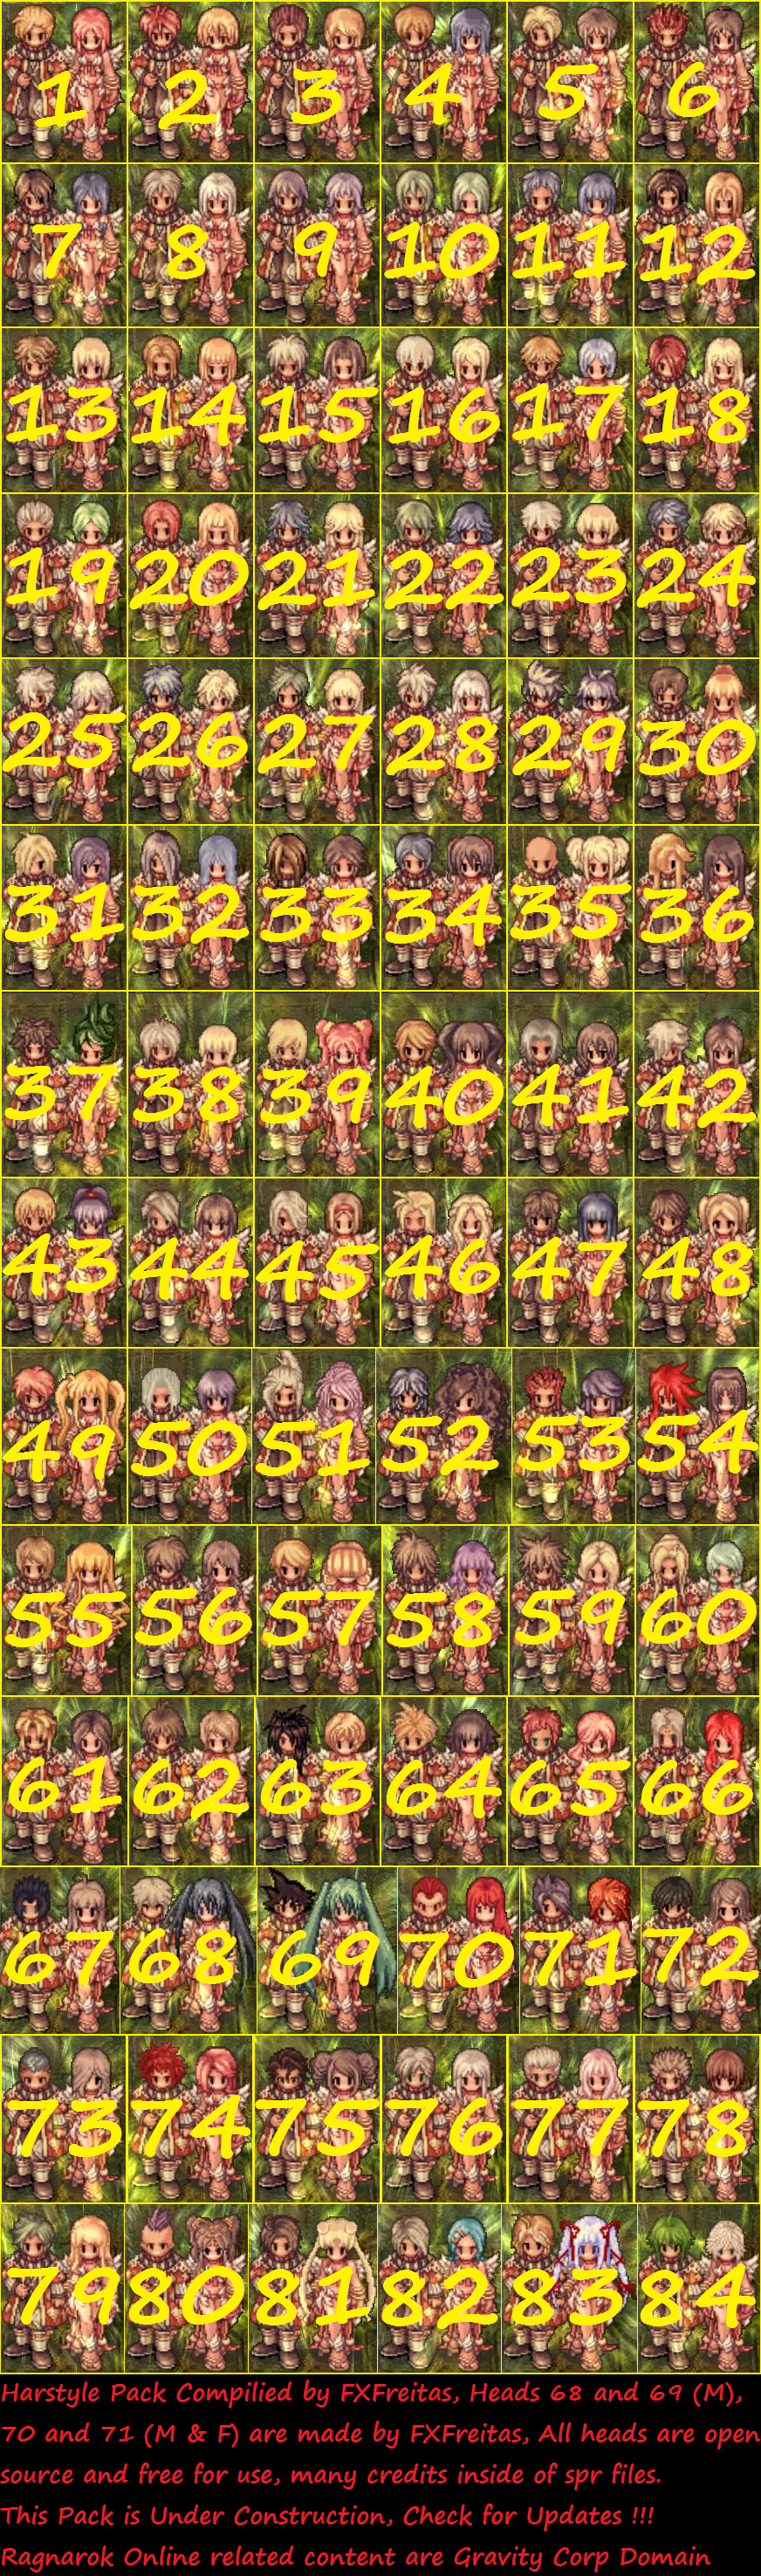 hairpack_by_fxfreitas-d9dwtc5.png